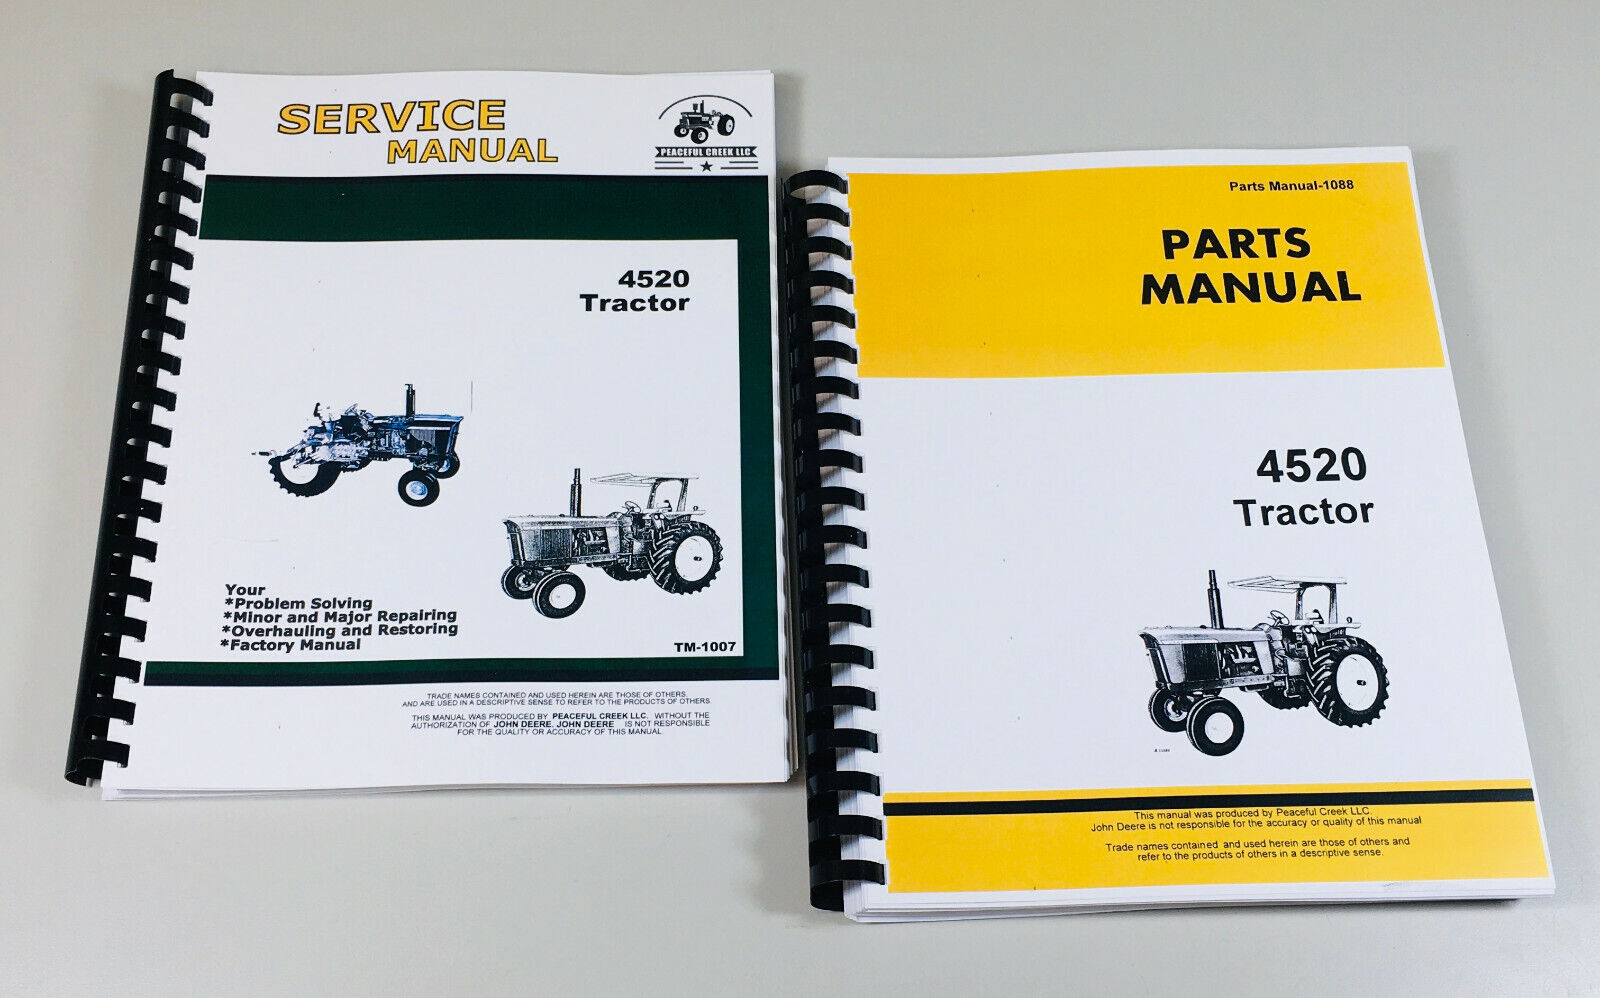 SERVICE MANUAL PARTS CATALOG SET FOR JOHN DEERE 4520 TRACTOR SHOP BOOK  REPAIR | eBayeBay